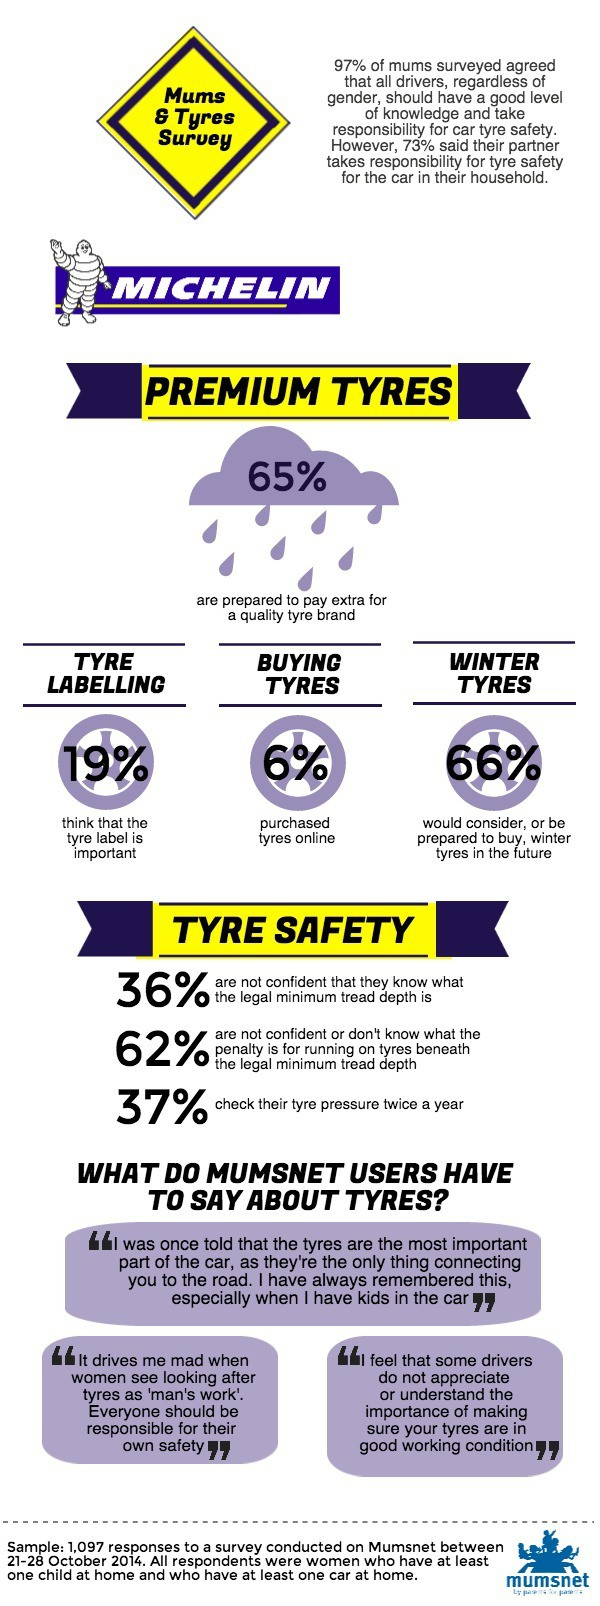 Michelin infographic 27.11.14 v1